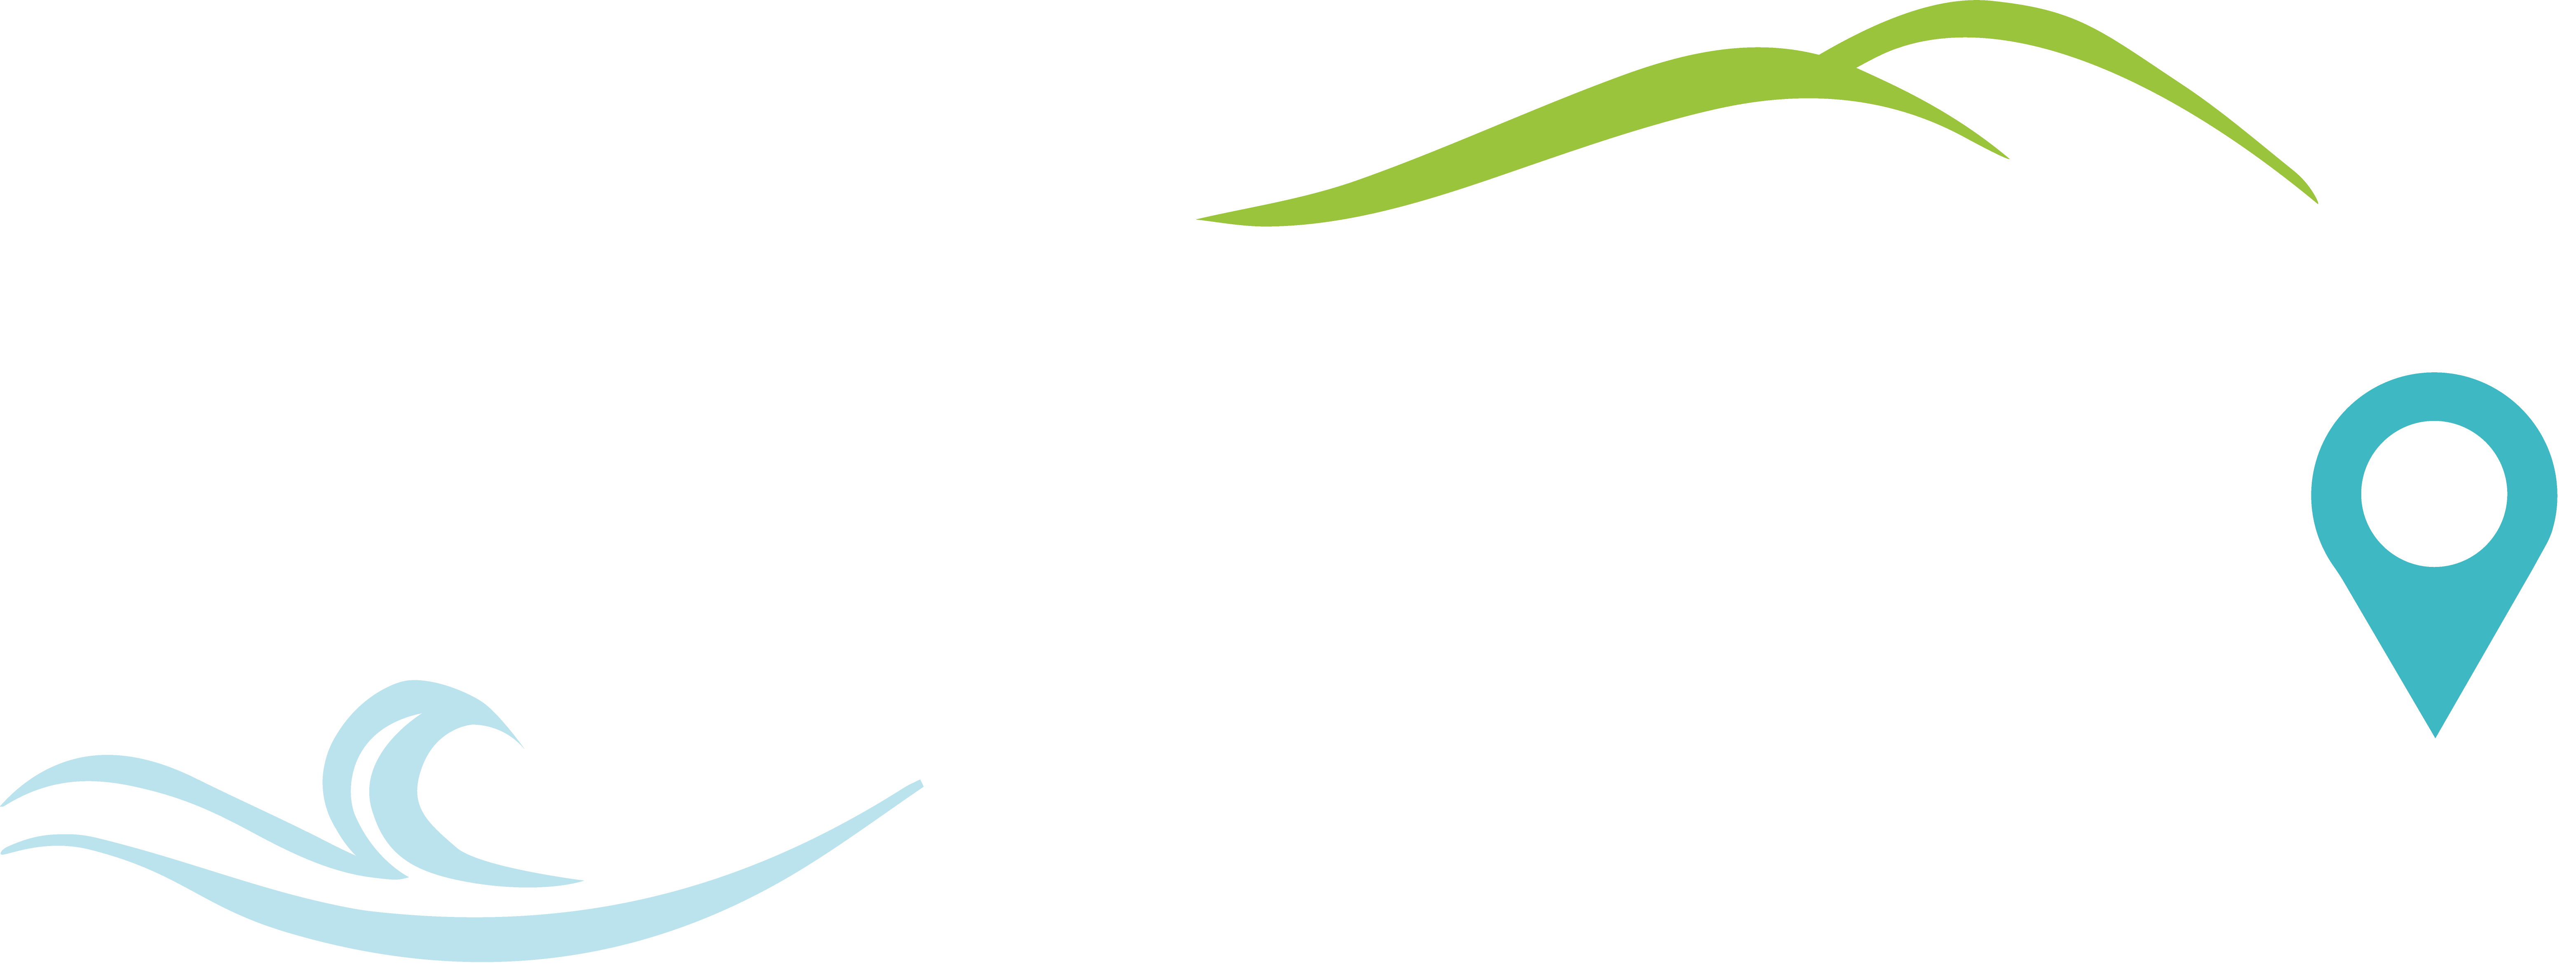 Discover Richmond Valley